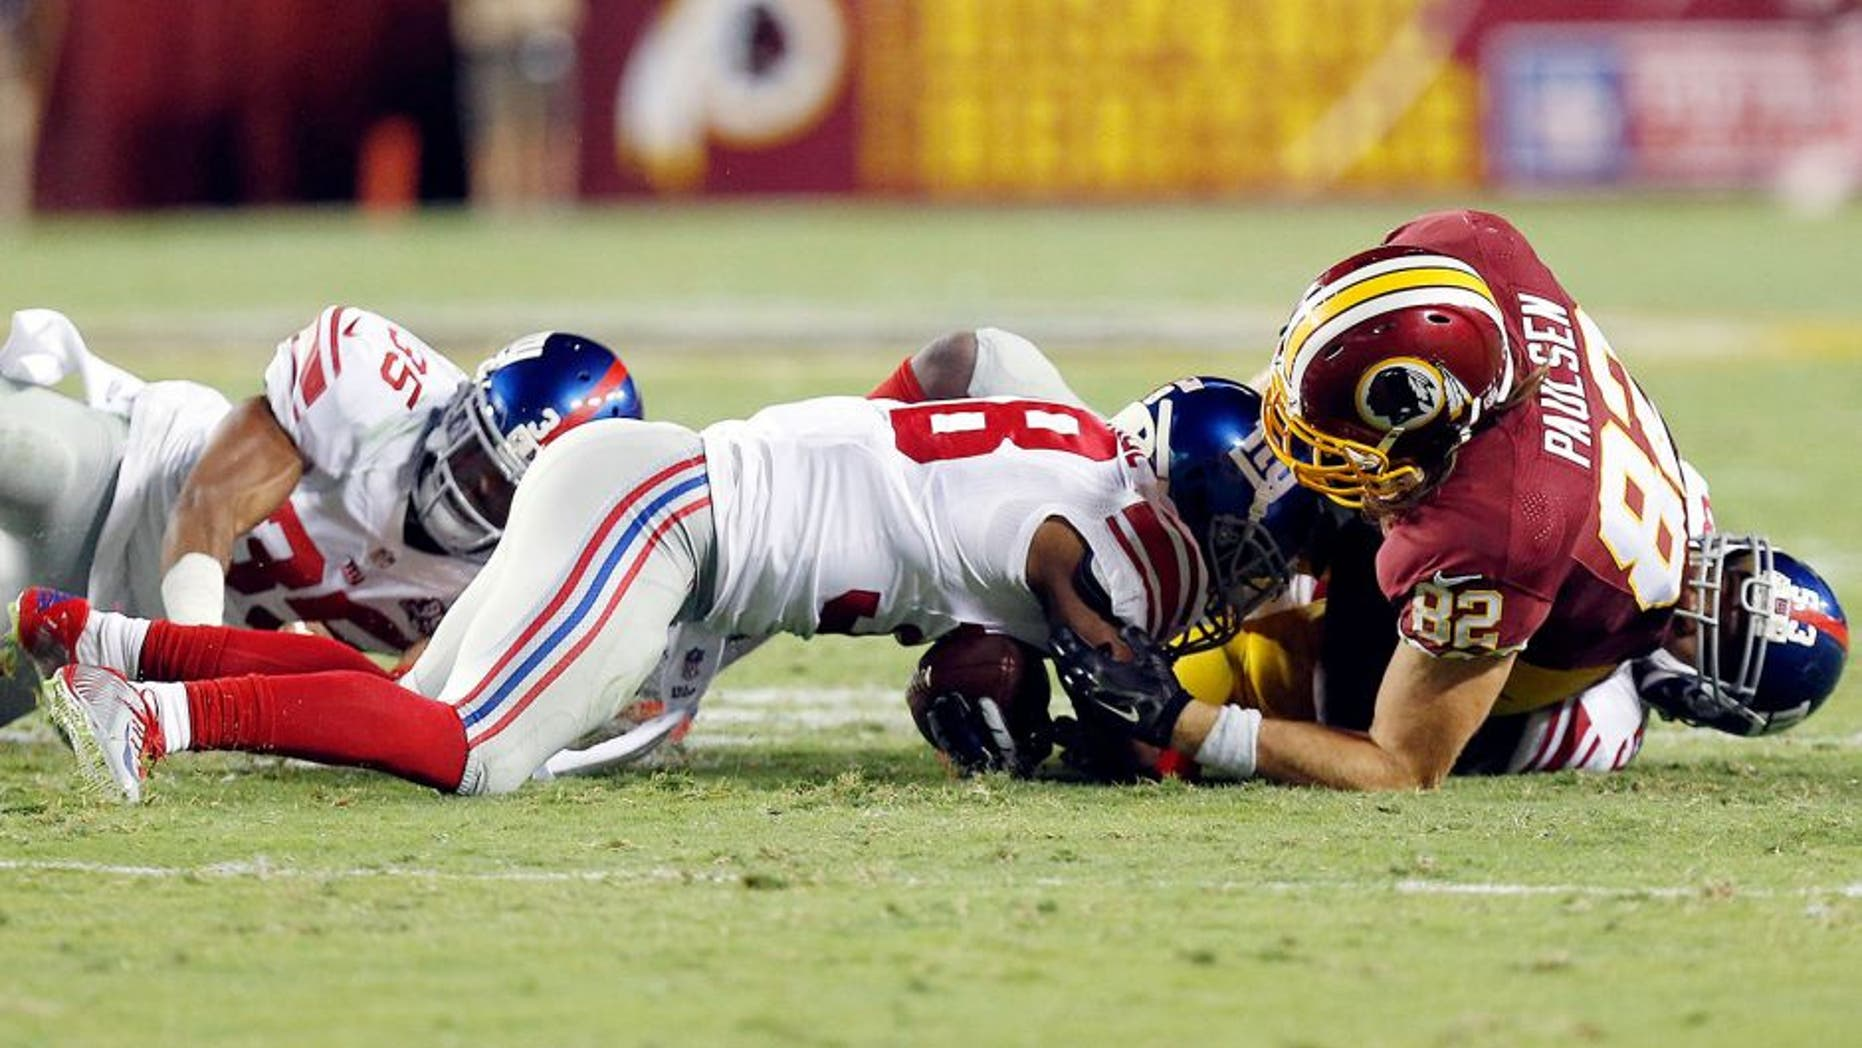 Sep 25, 2014; Landover, MD, USA; New York Giants cornerback Trumaine McBride (38) recovers a fumble by Washington Redskins tight end Logan Paulsen (82) in the second quarter at FedEx Field. Mandatory Credit: Geoff Burke-USA TODAY Sports